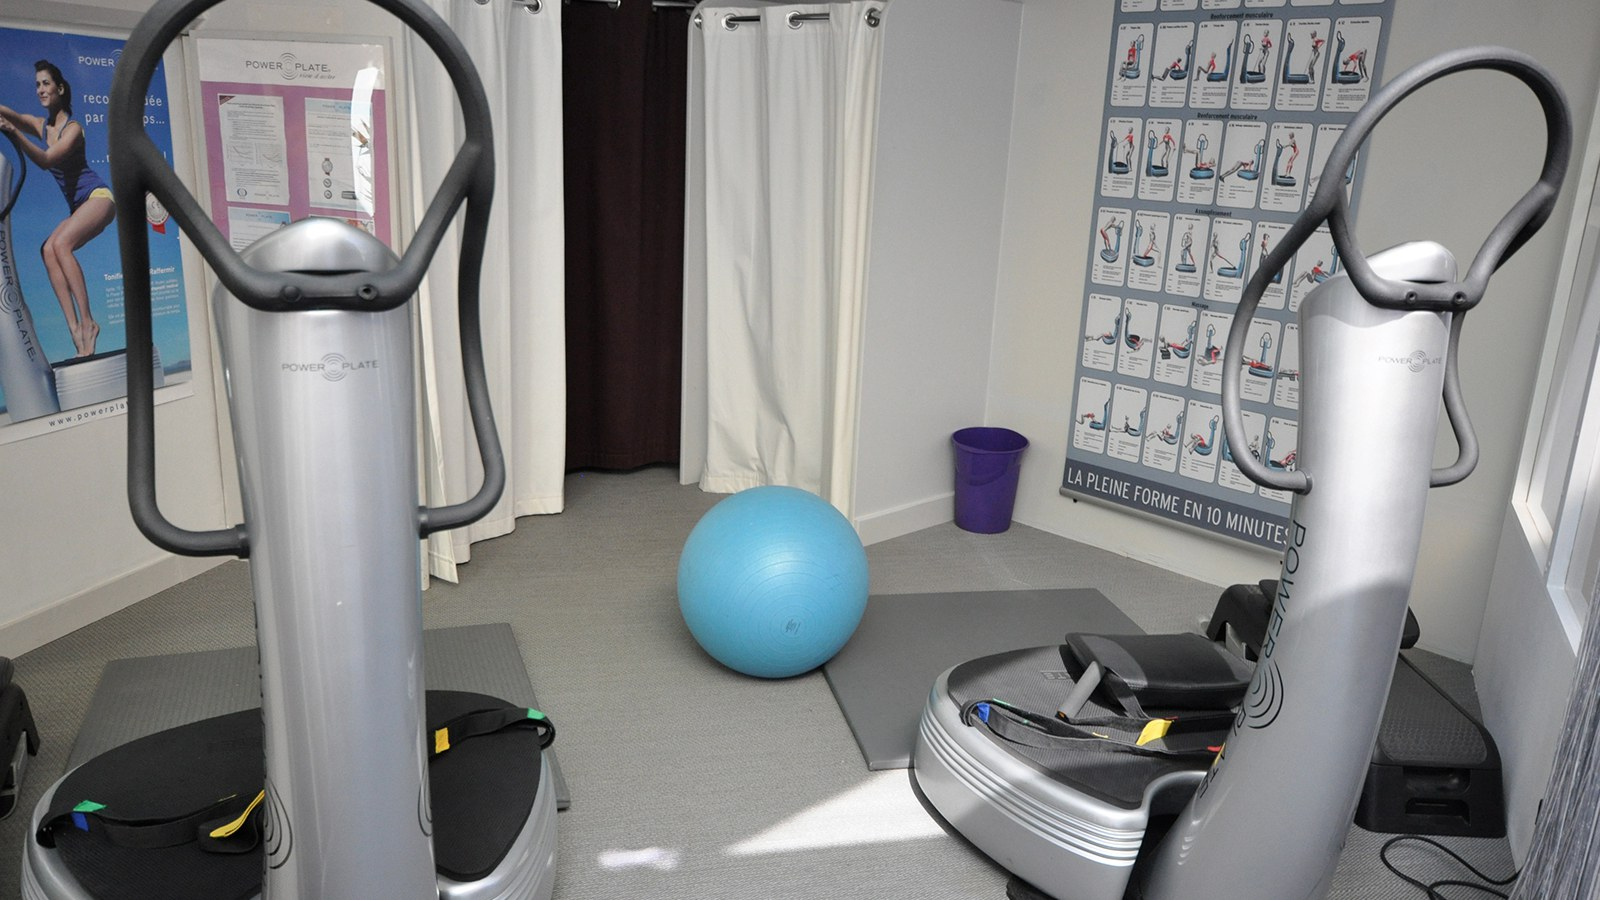 Powerplate Effiligne